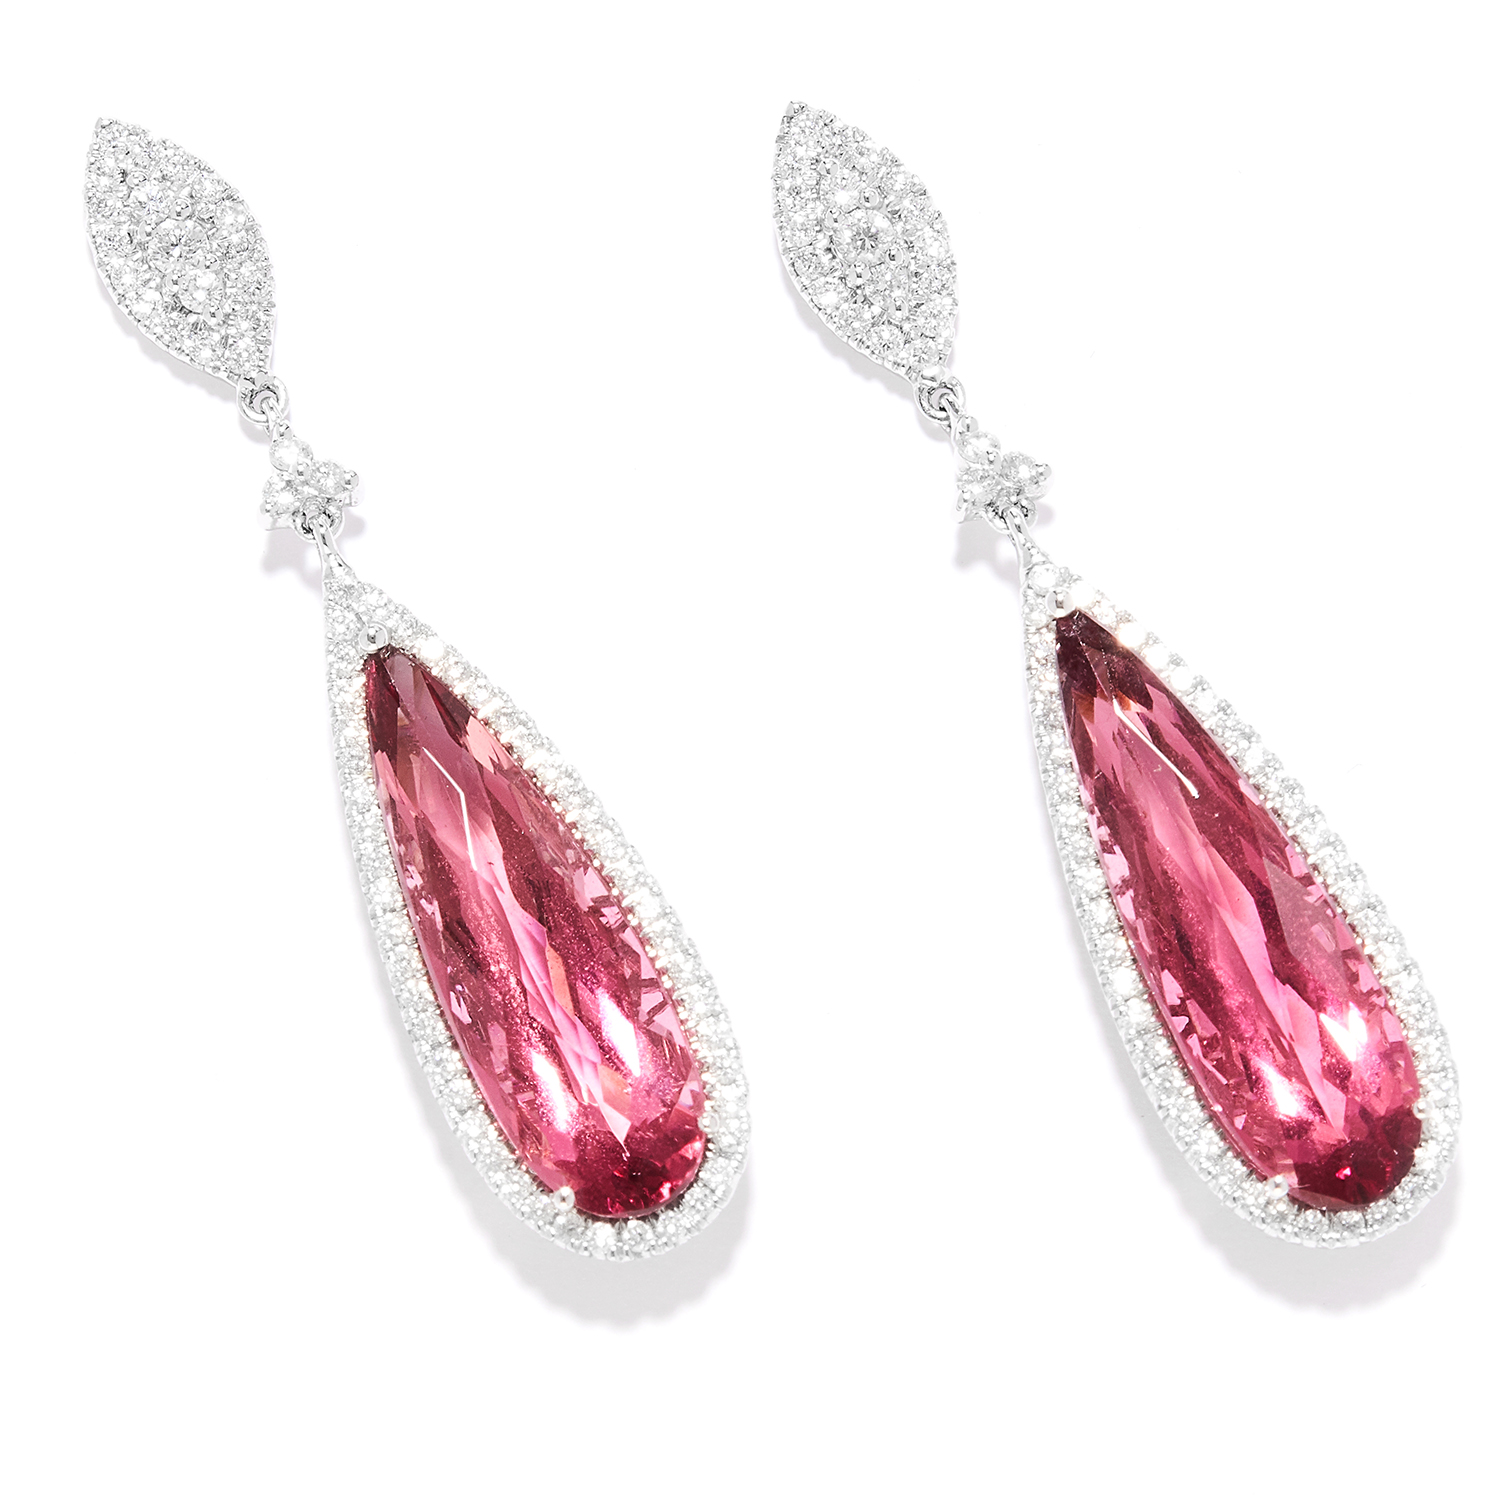 TOURMALINE AND DIAMOND DROP EARRINGS in 18ct white gold, each set with round cut diamonds suspending